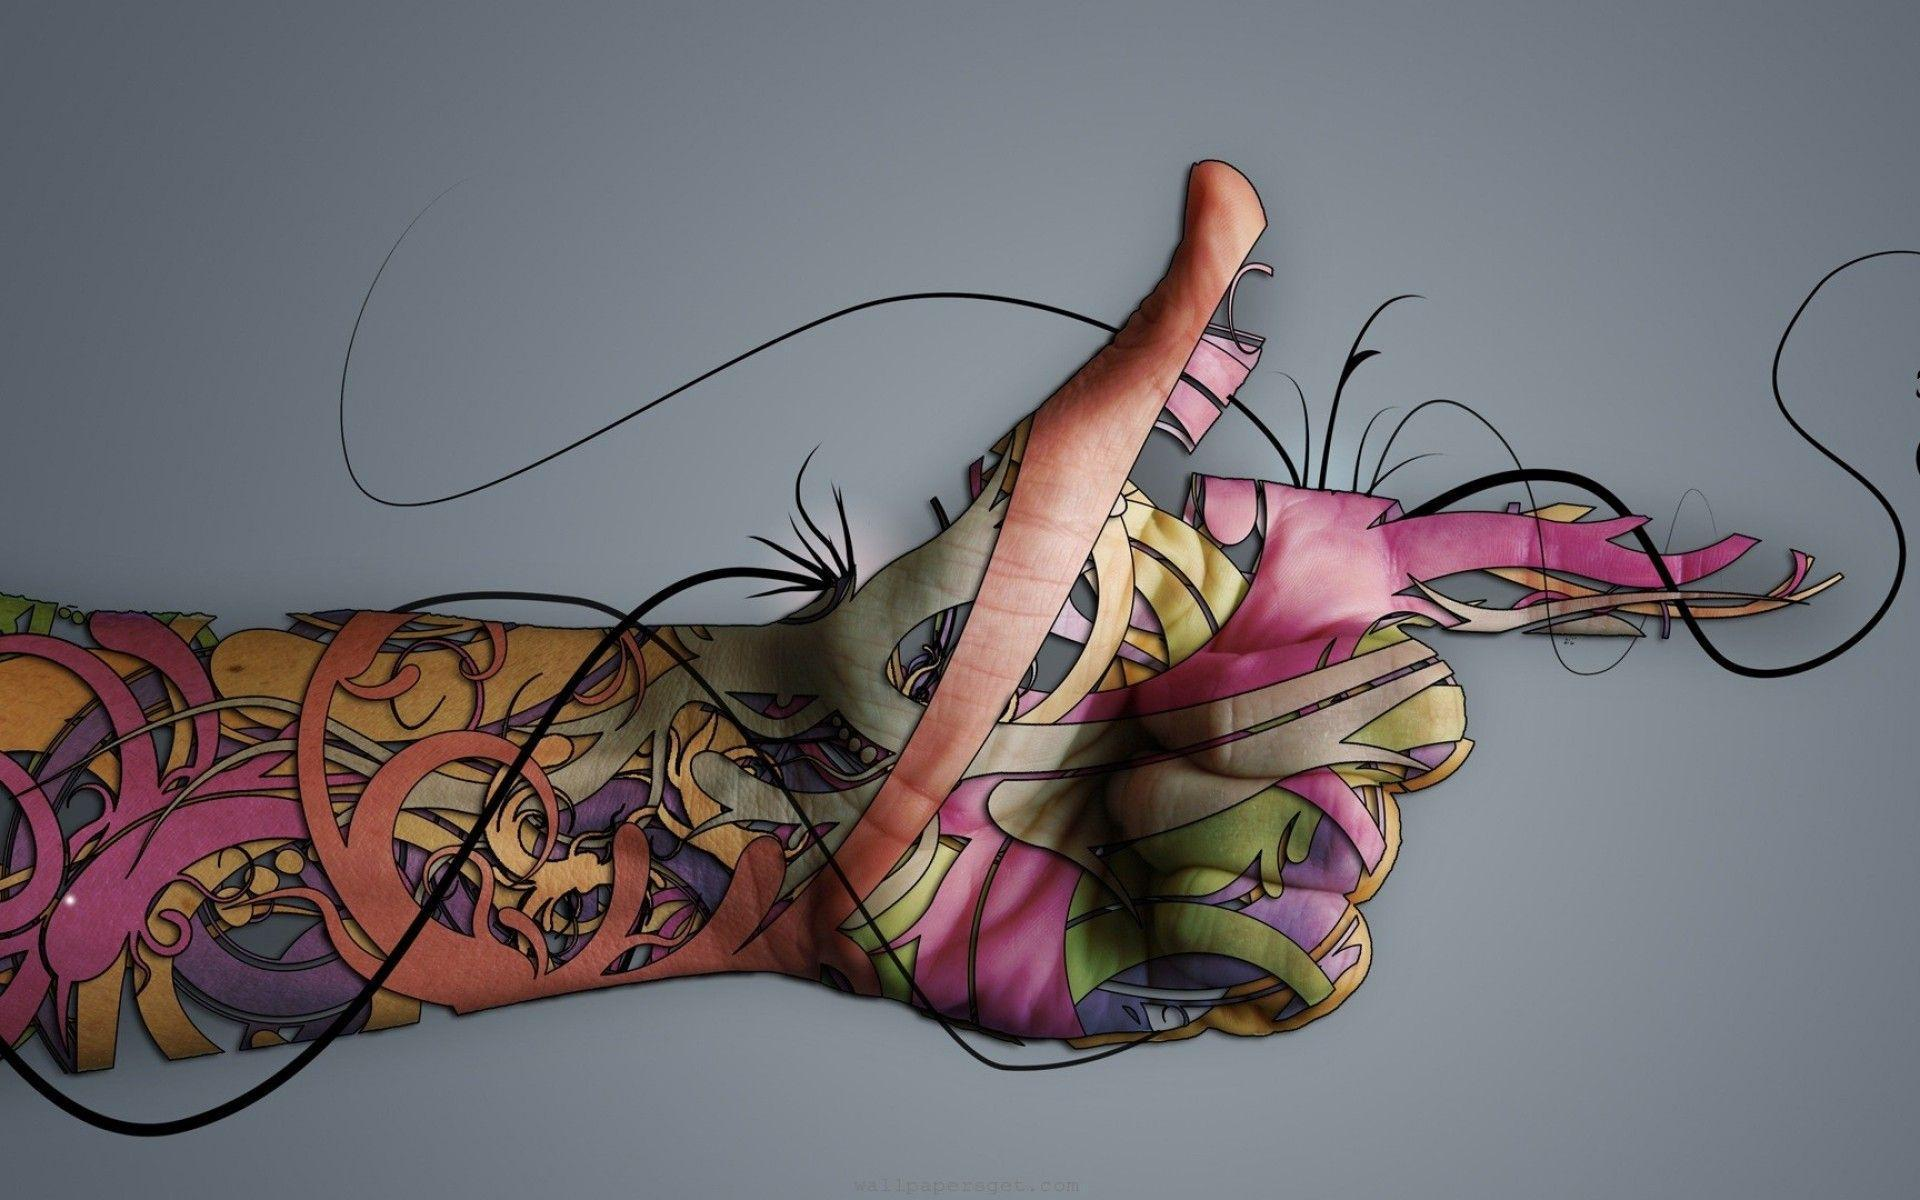 Tattoo Art Wallpapers - Wallpaper Cave